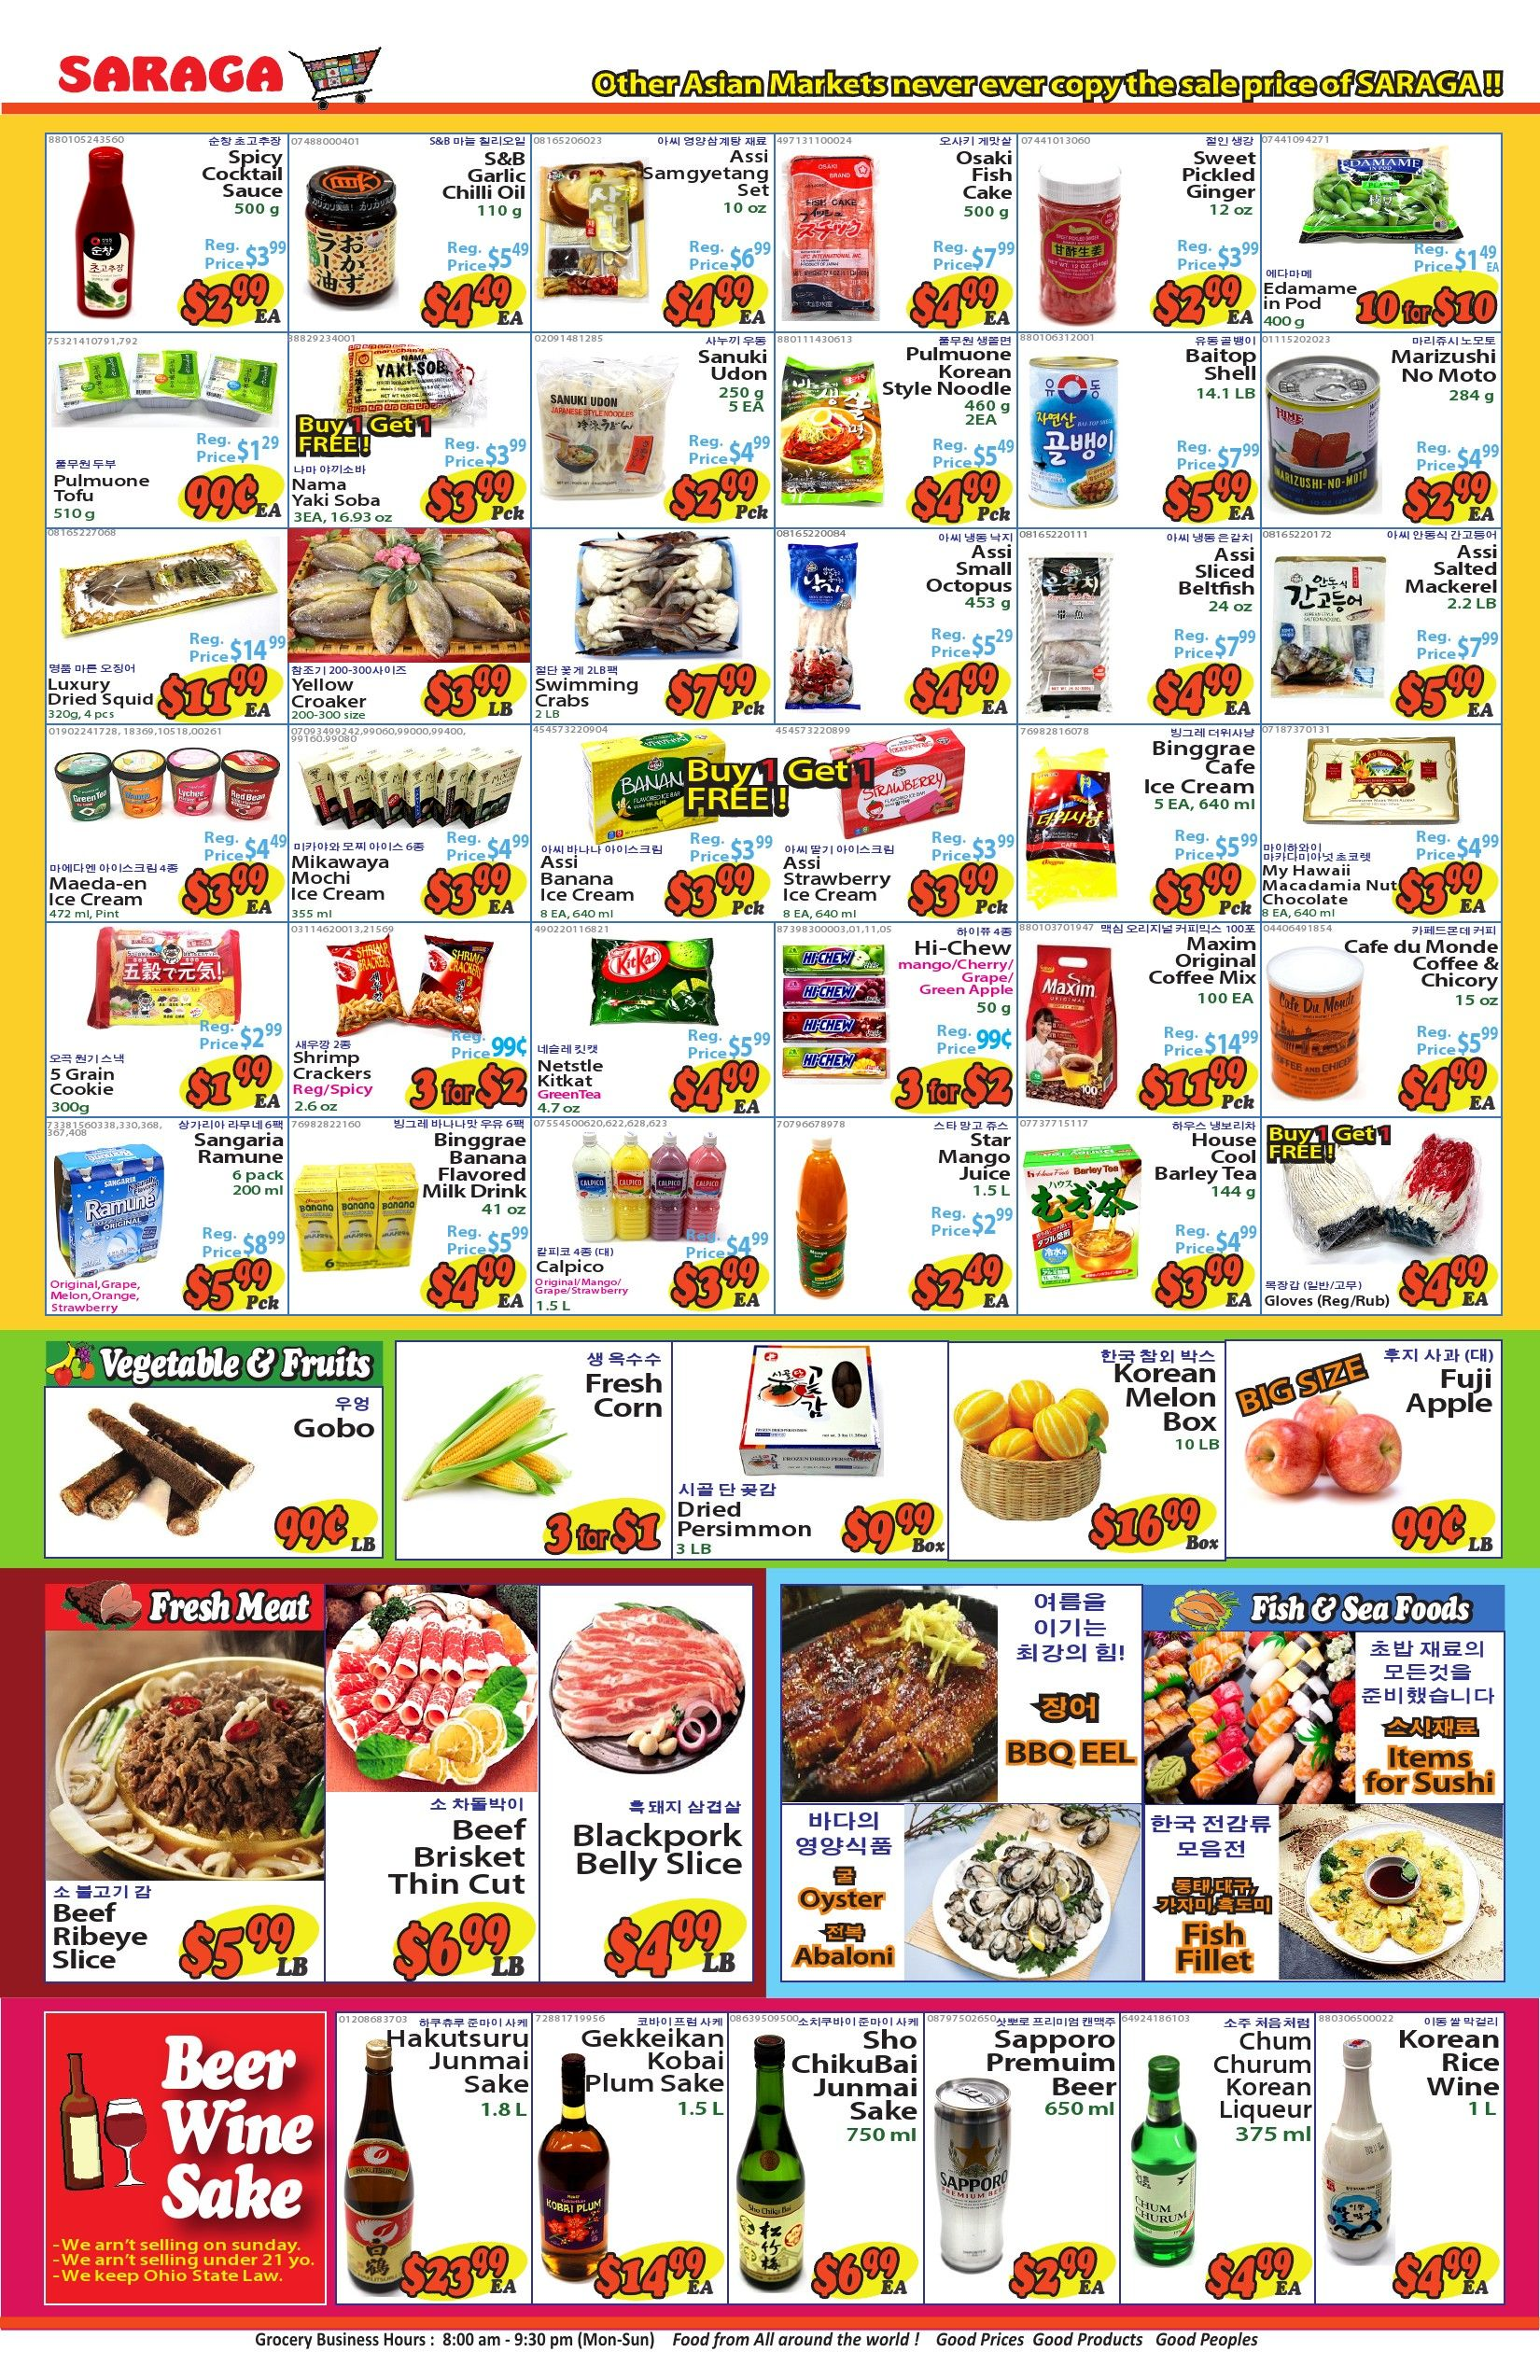 Weekly Ad Fresh meat, Fish recipes, Persimmon